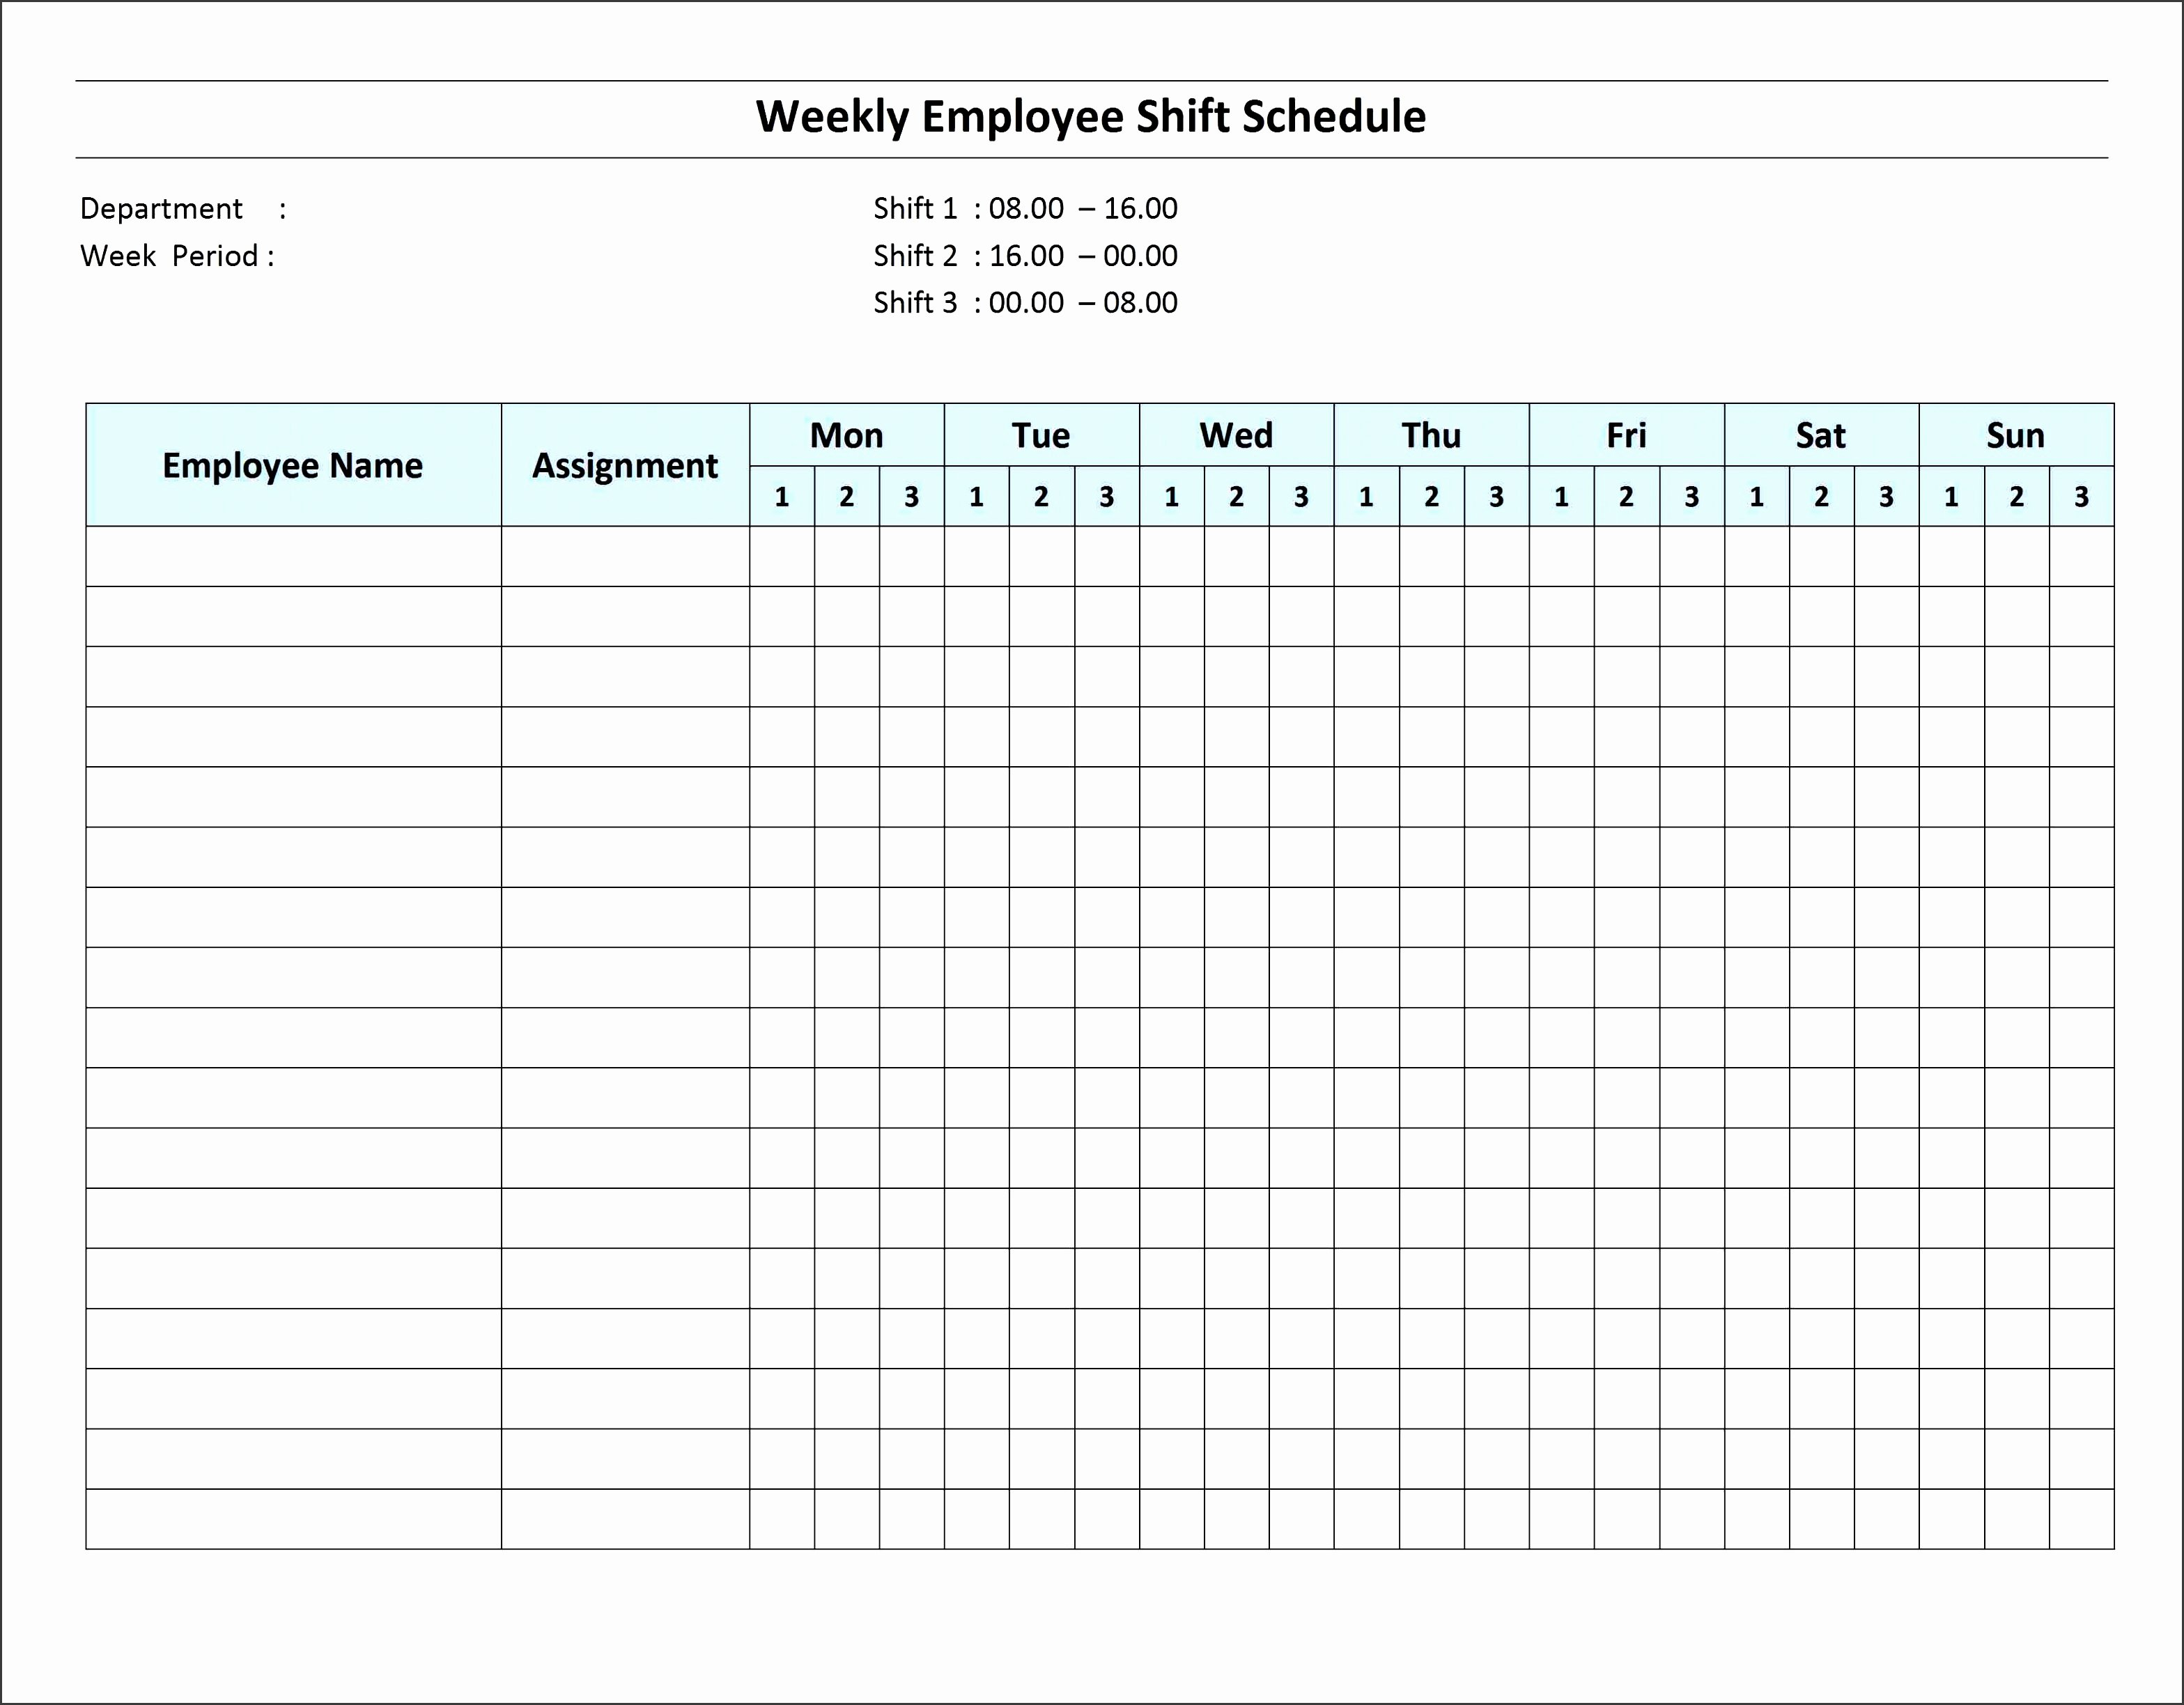 Excel Employee Shift Schedule Template Fresh 6 Excel Daily Work Schedule Sampletemplatess